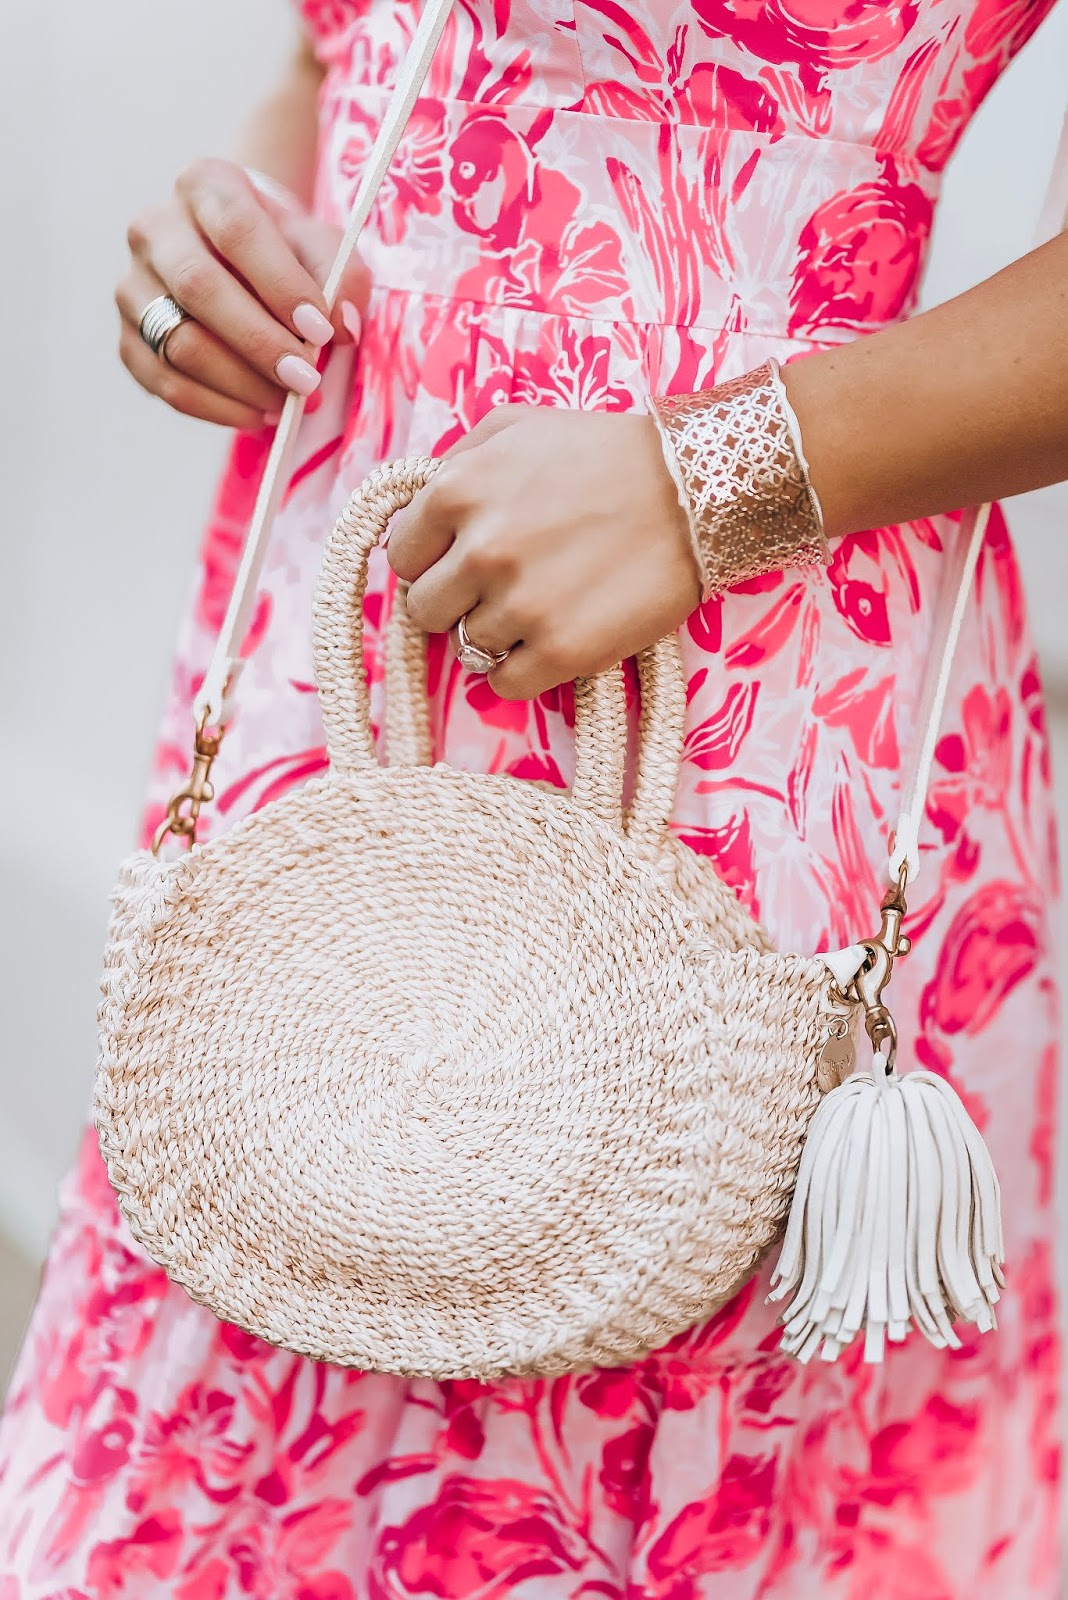 Lilly Pulitzer Melody Maxi Dress + Clare V. Mini Alice in Charleston, SC. - Something Delightful Blog